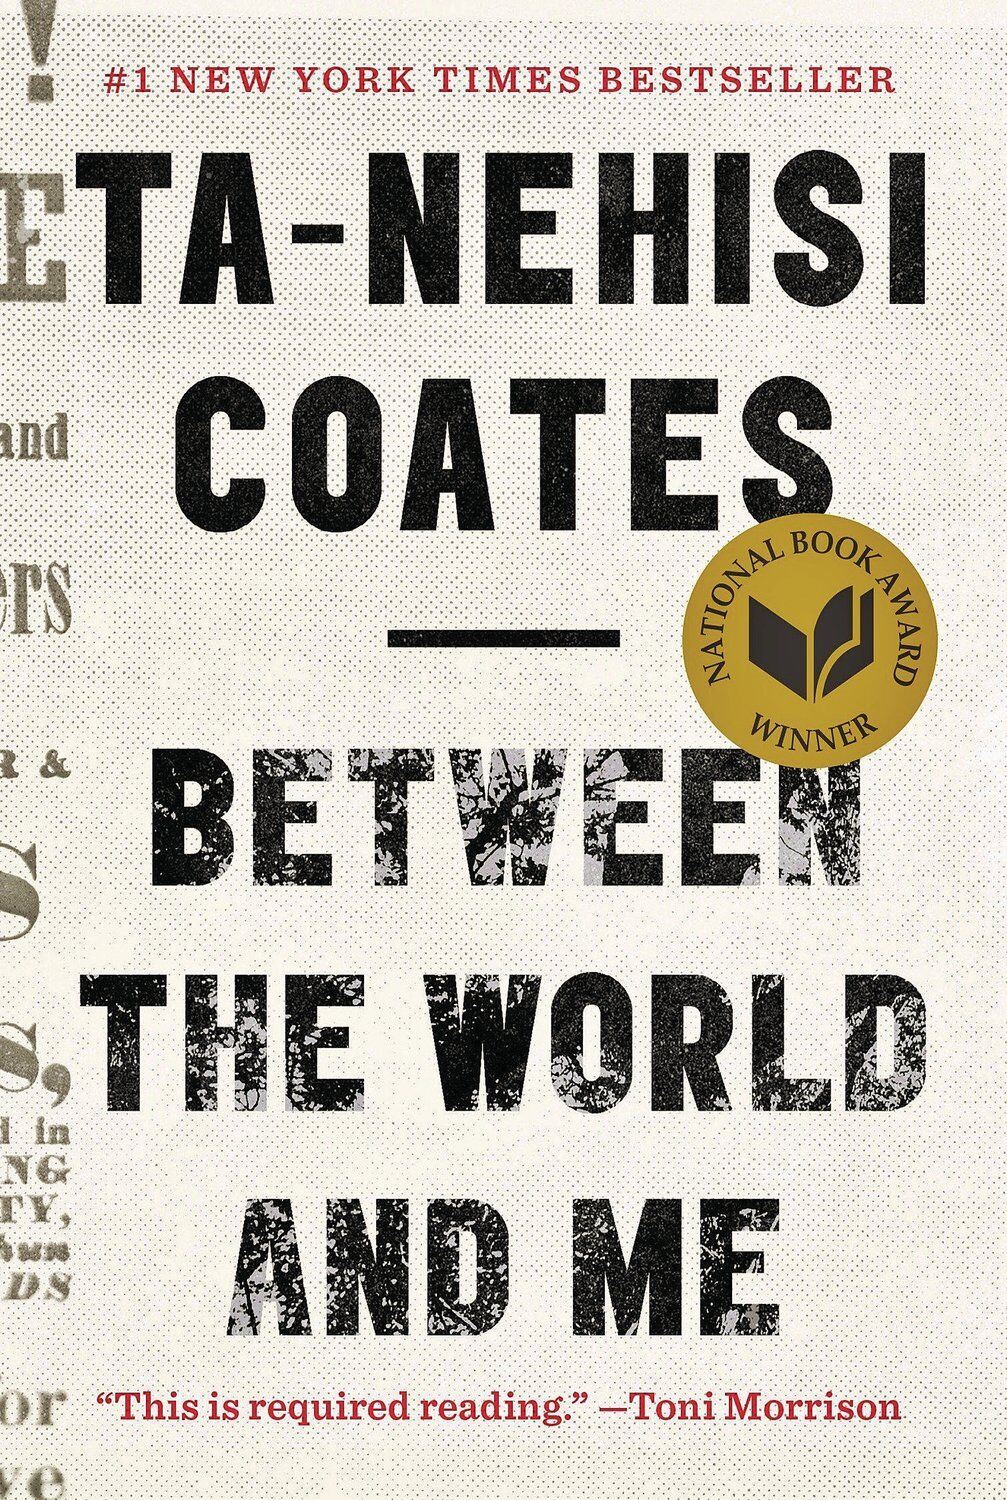 Staff Picks: What we're reading now ...